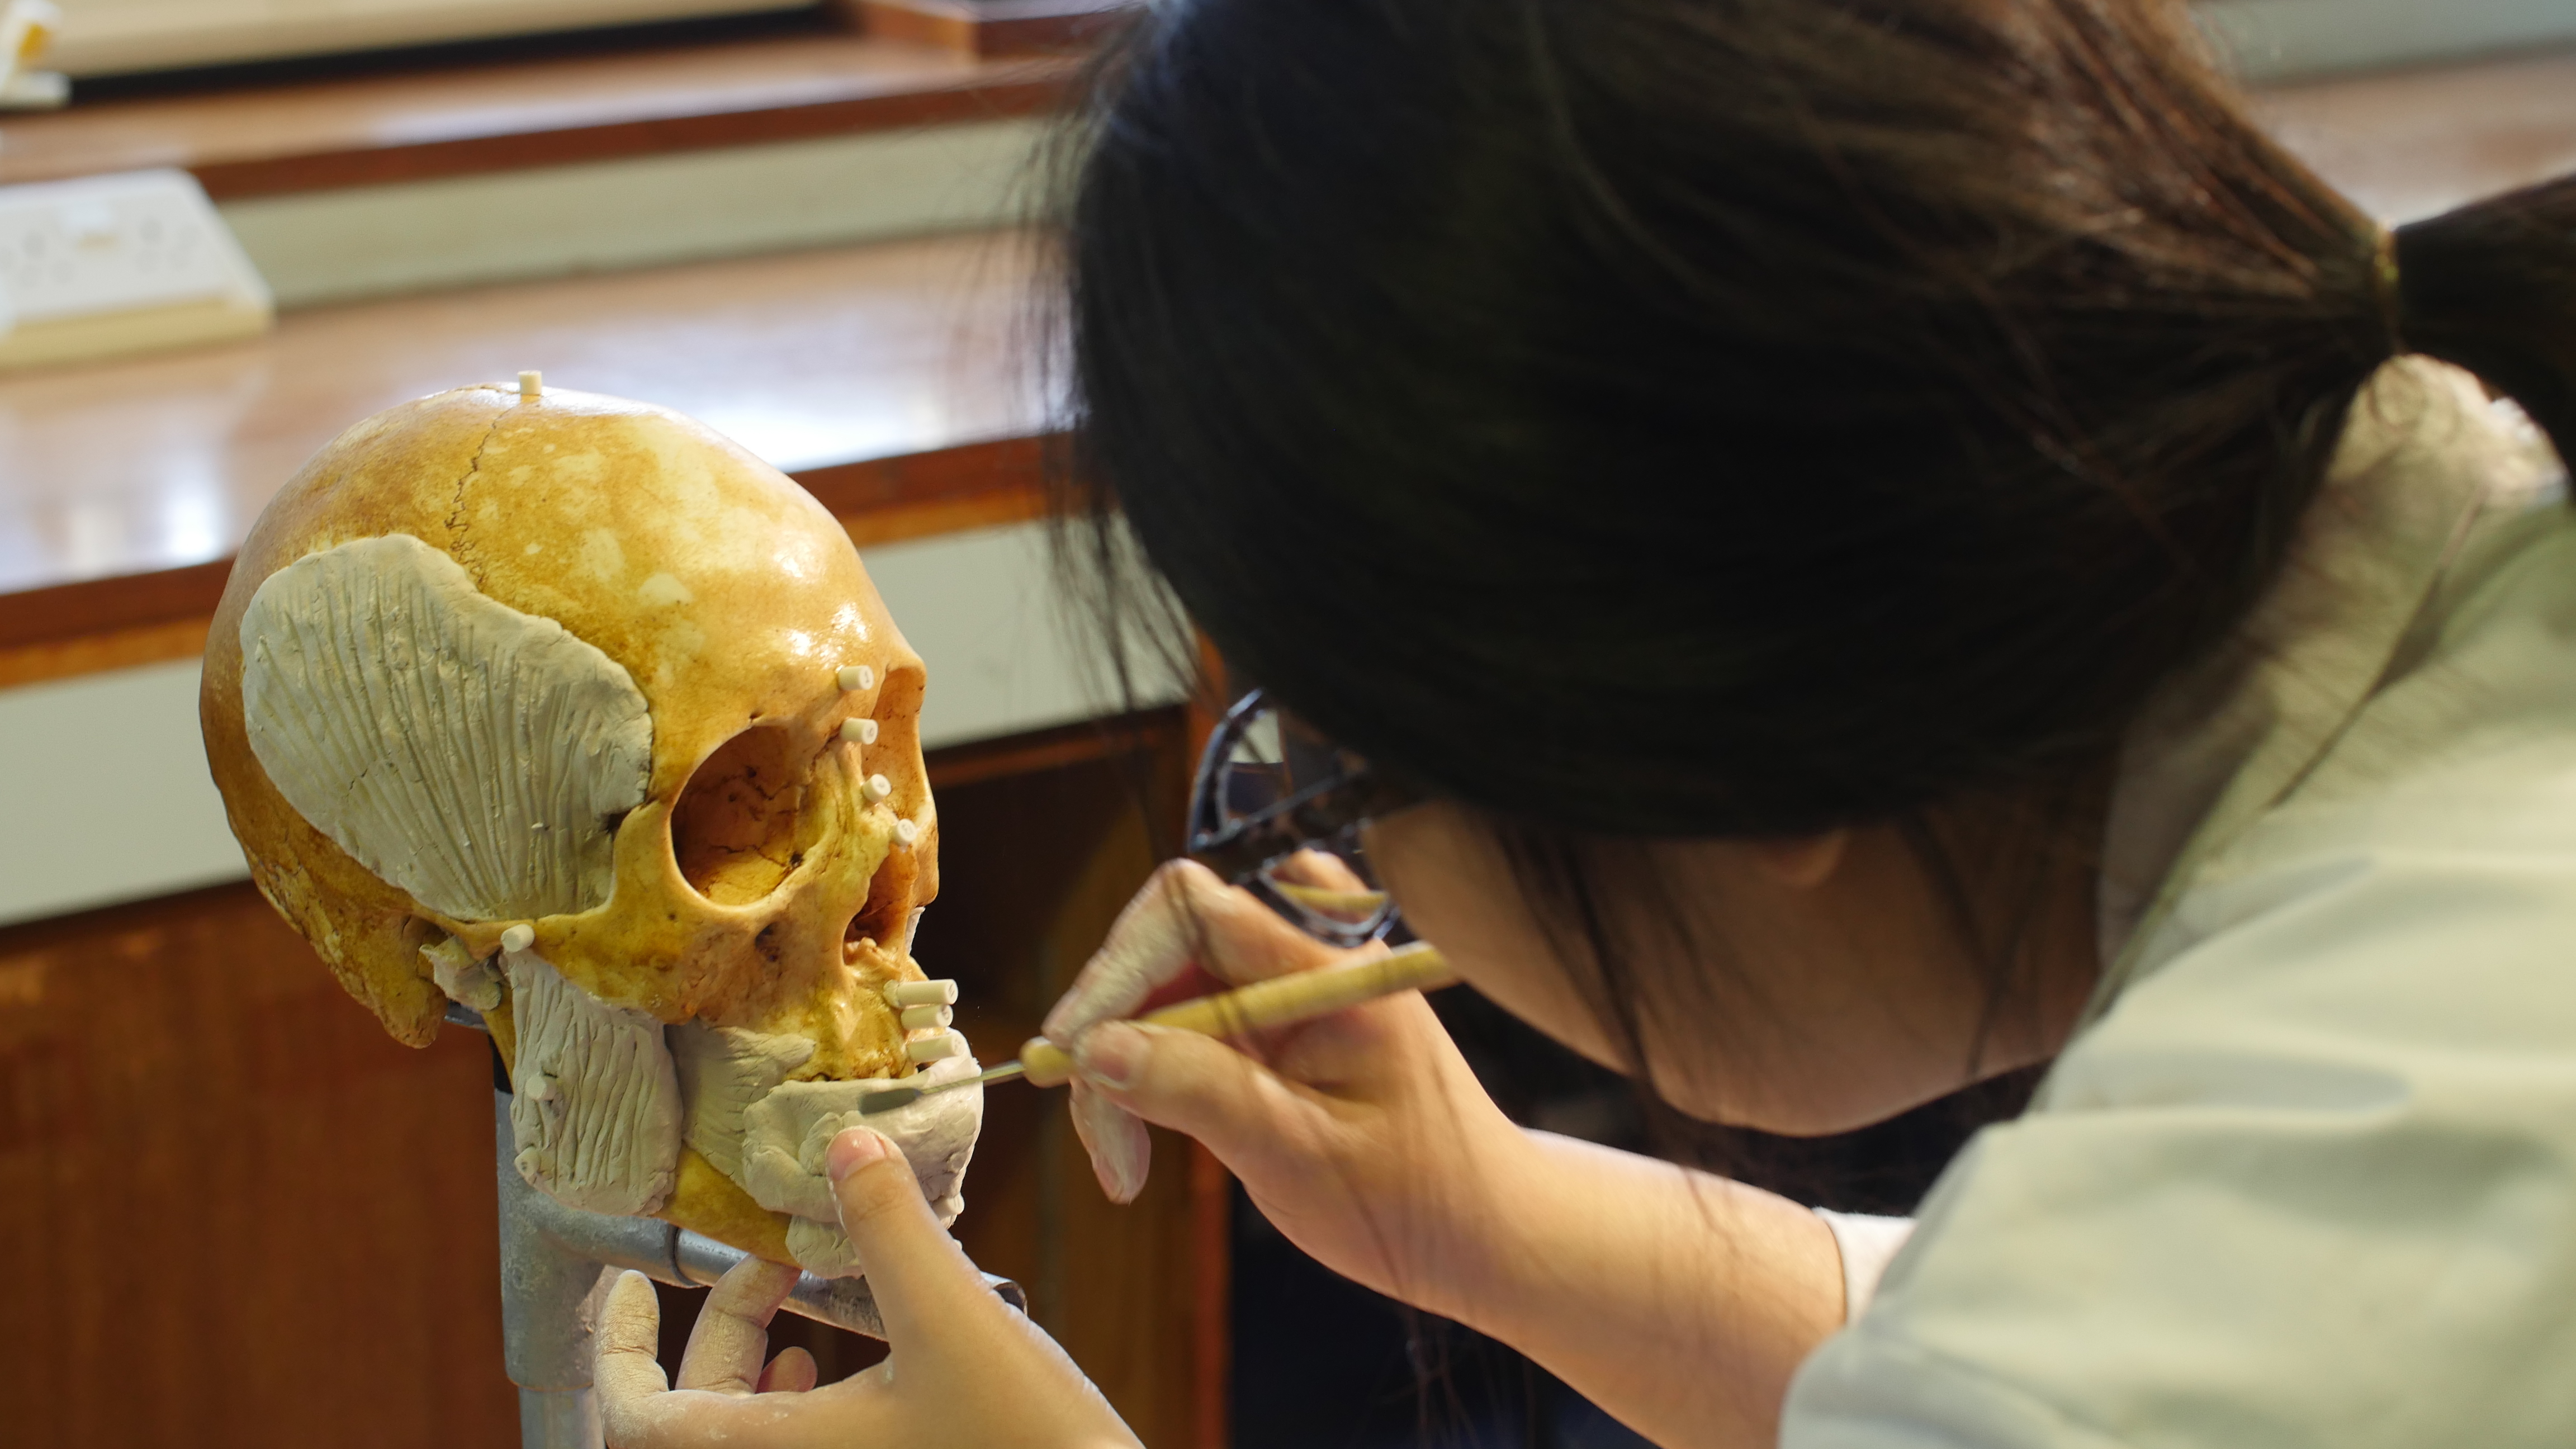 Our demonstrator conducting a facial reconstruction in clay